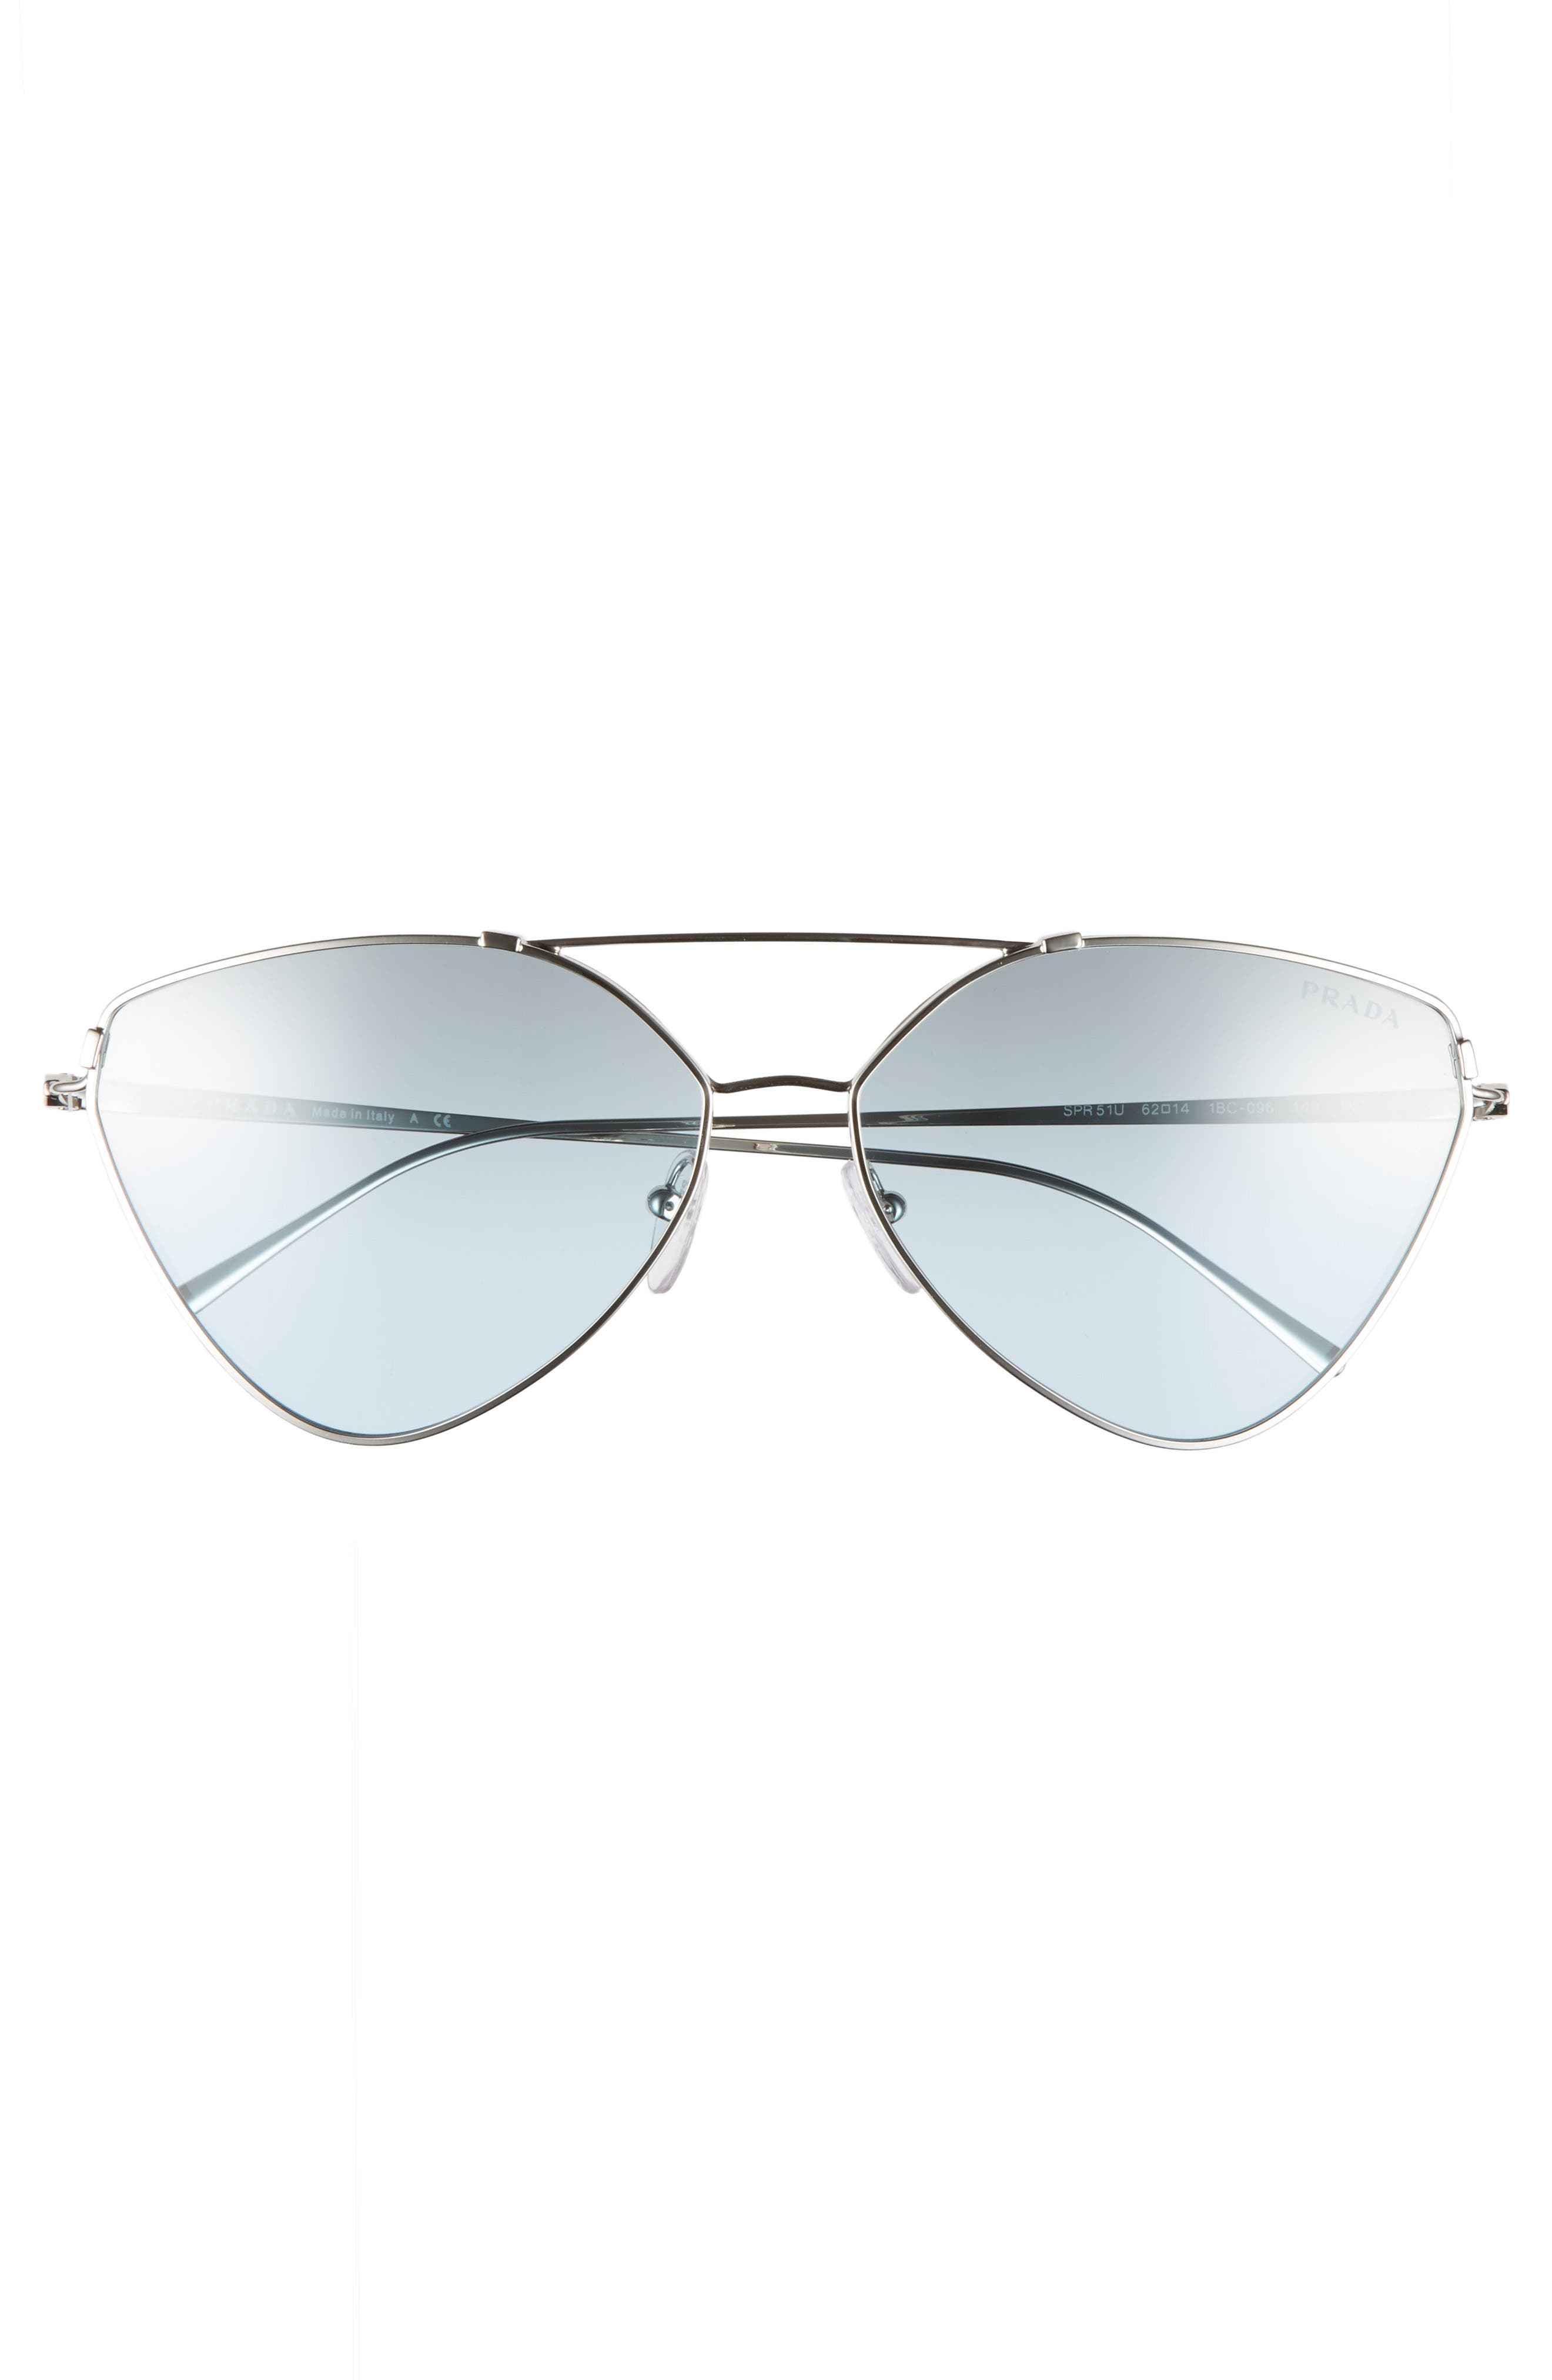 Alternate Image 3  - Prada 62mm Oversize Aviator Sunglasses